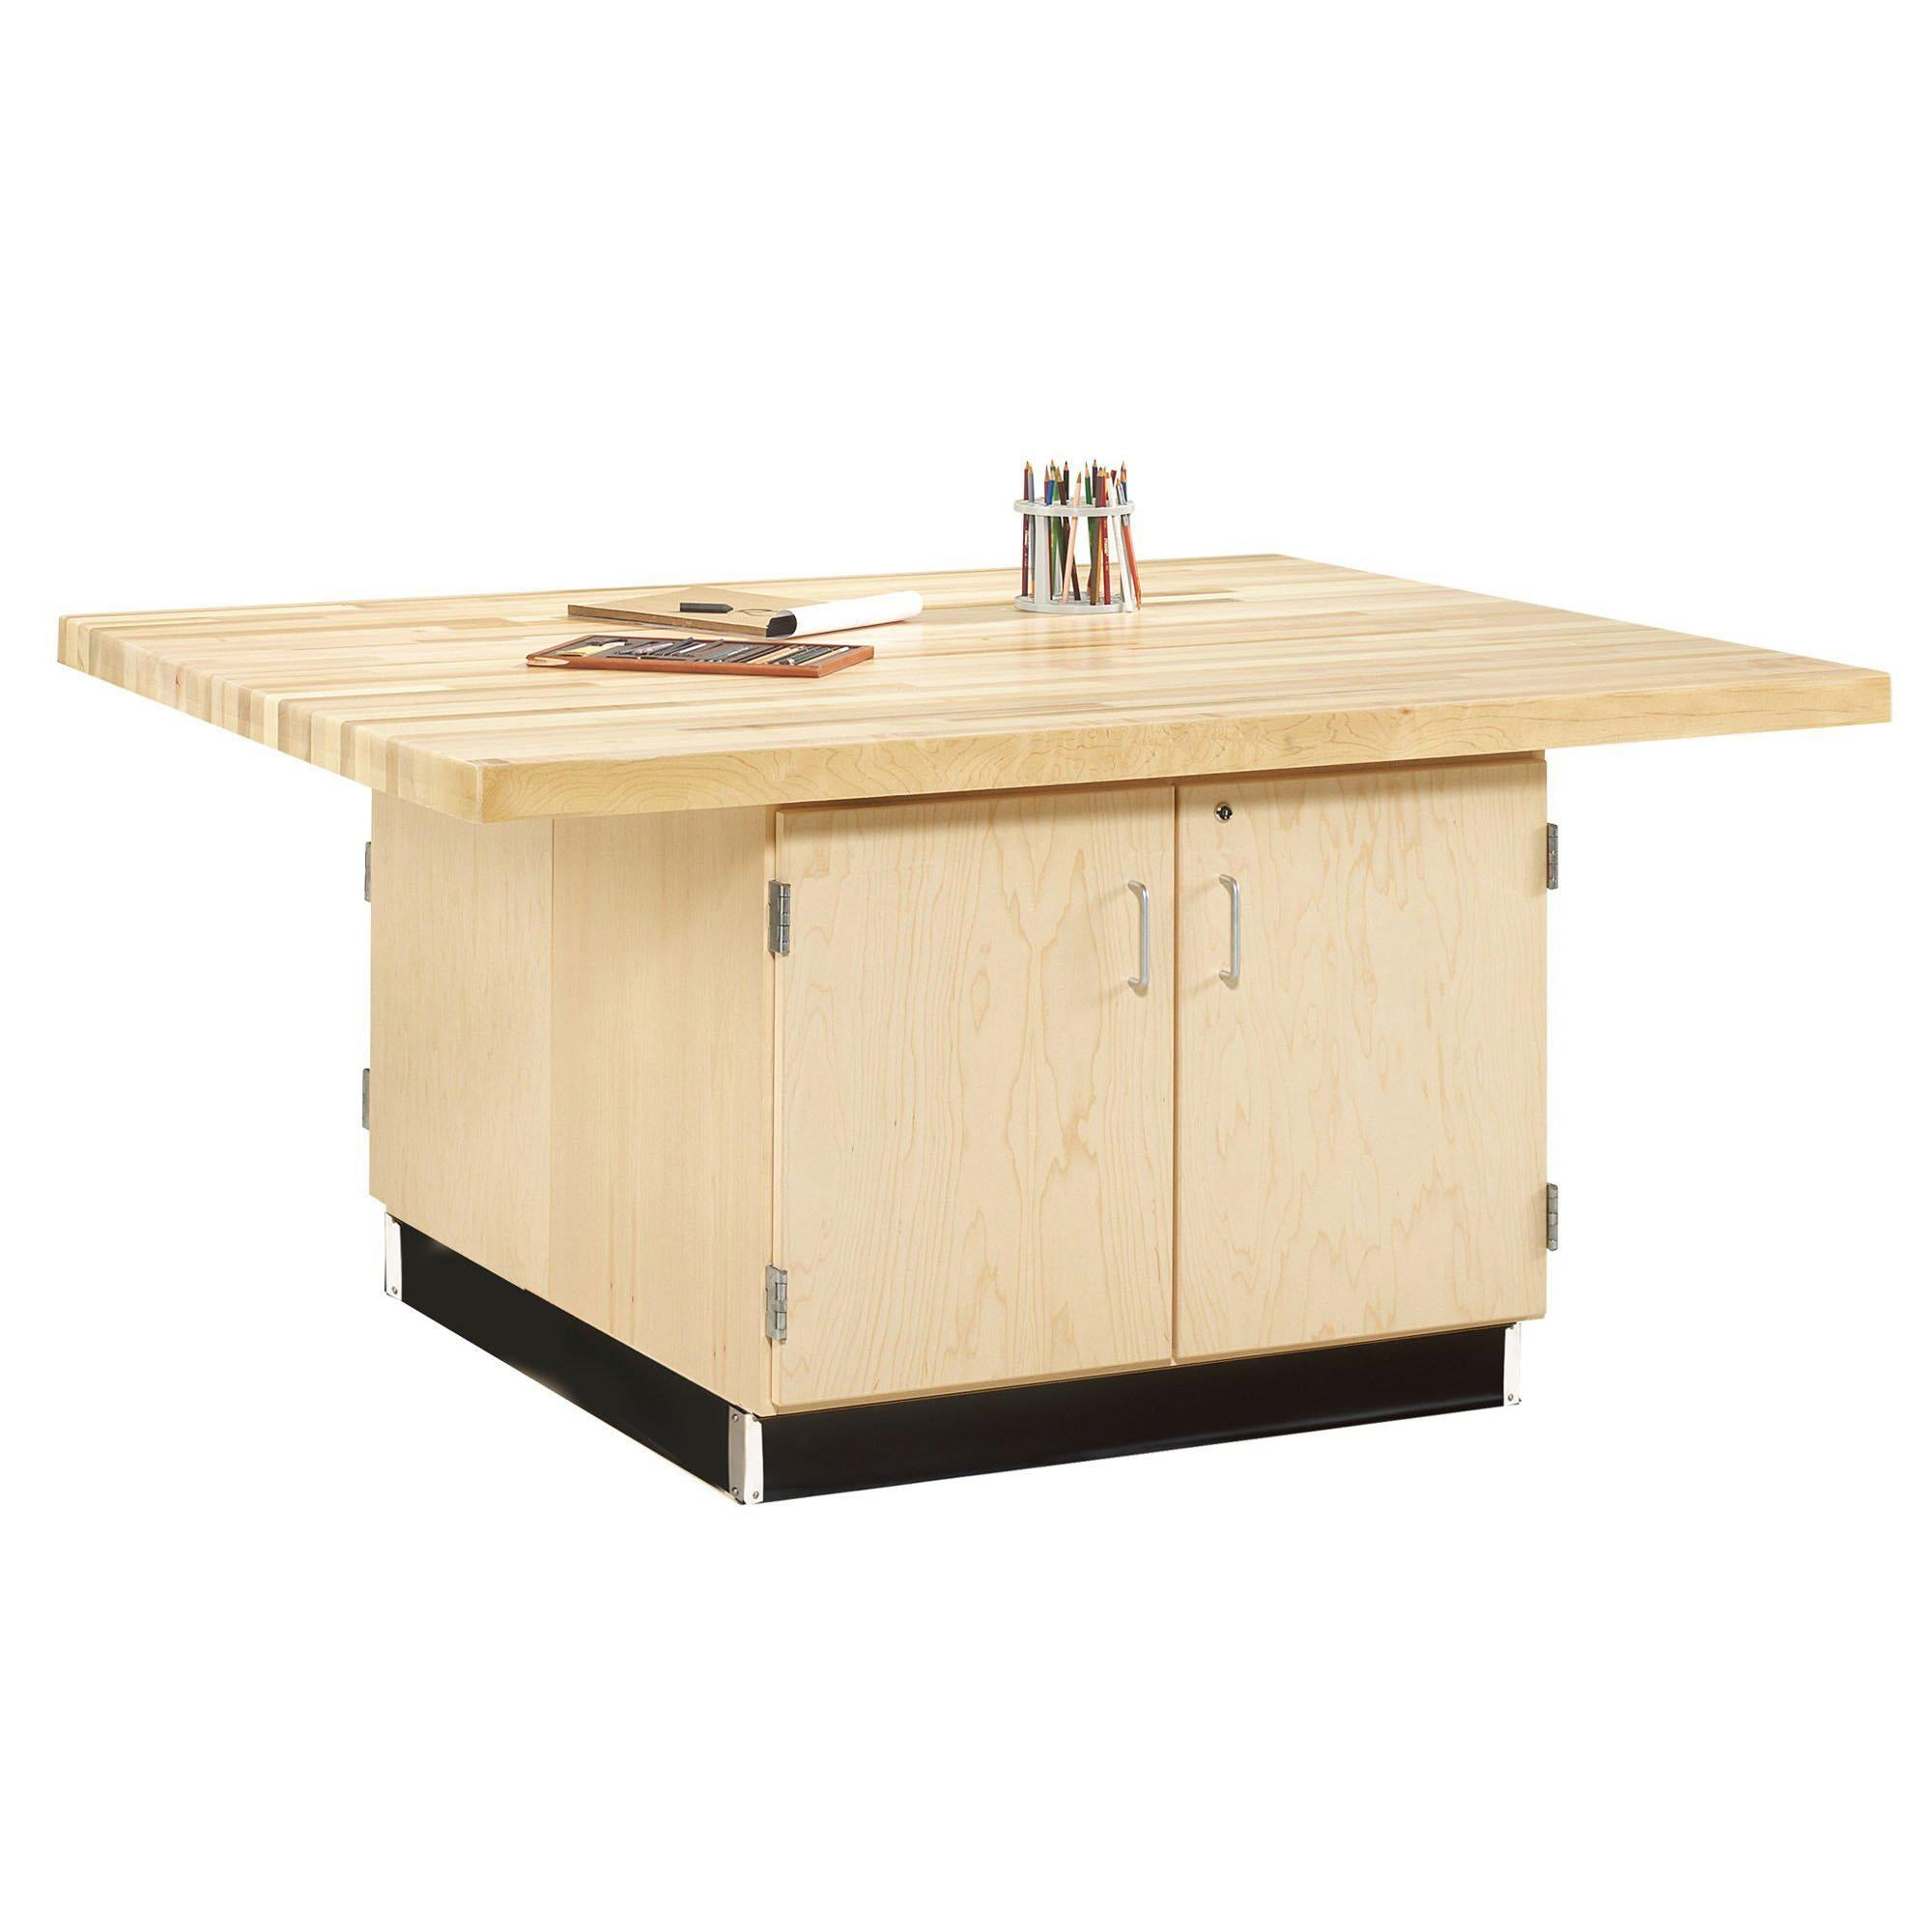 Four-Station Wood Workbench with Cabinets-0-